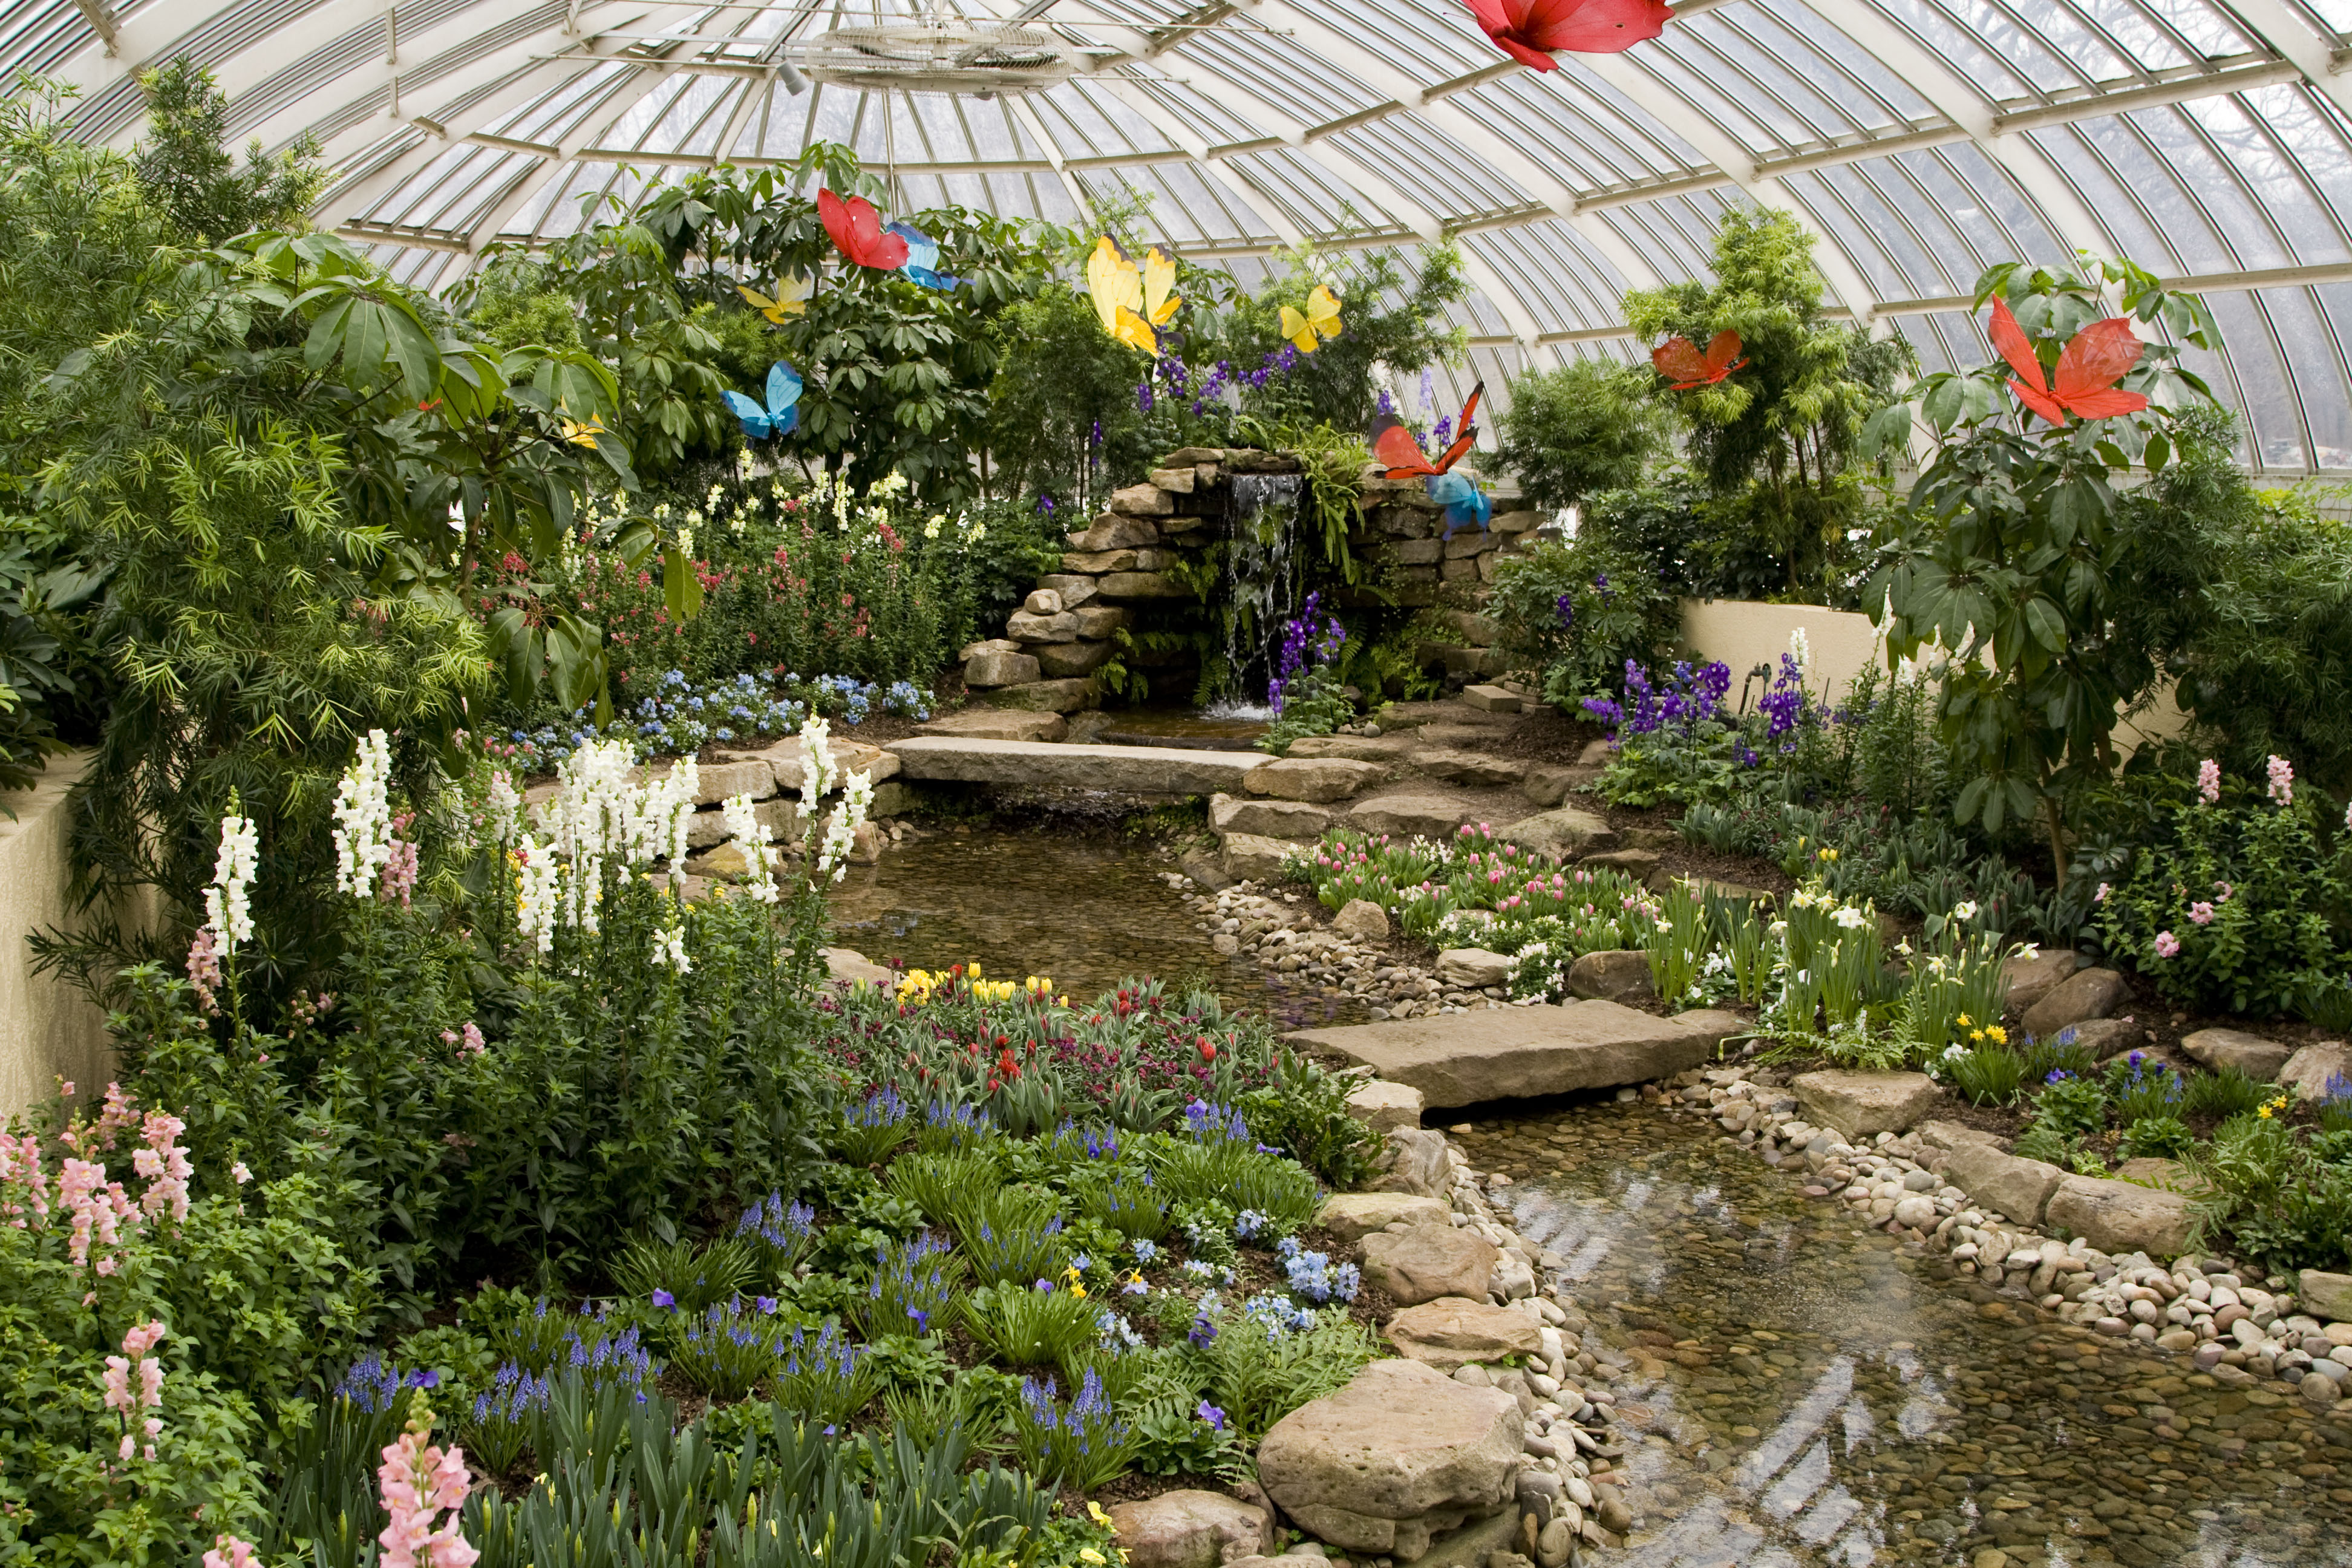 Phipps Conservatory And Botanical Gardens Botanic Garden In Pittsburgh Thousand Wonders